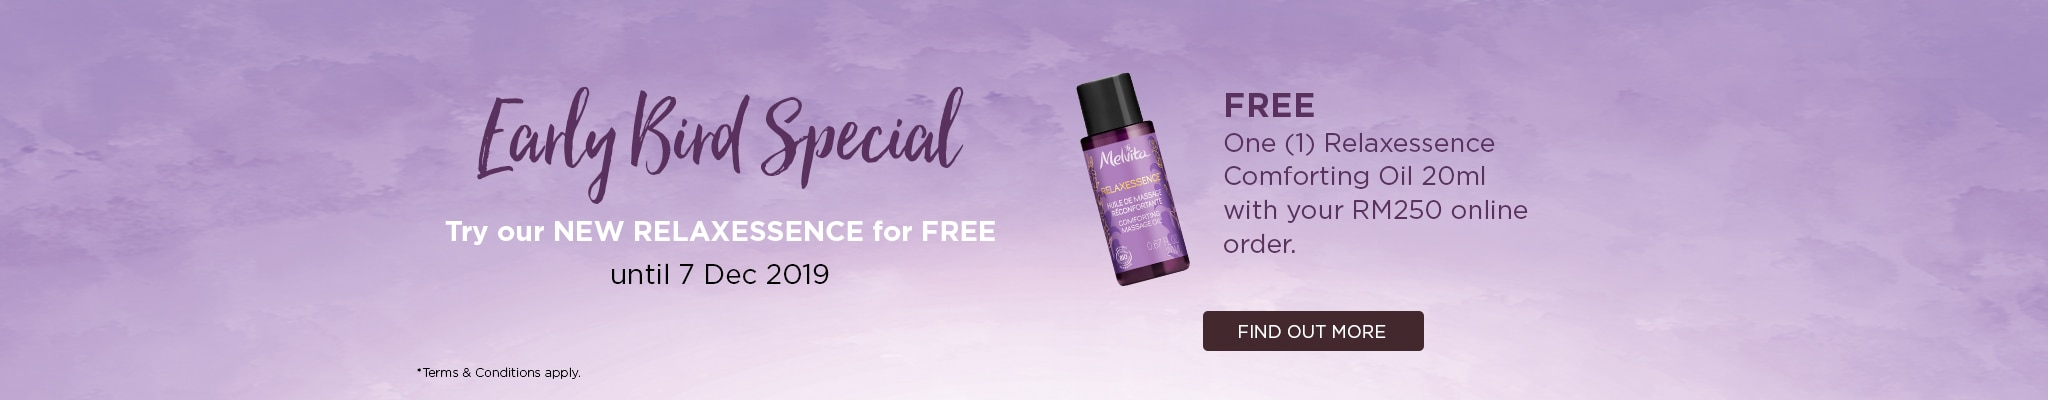 December Early Bird Free Comforting Oil